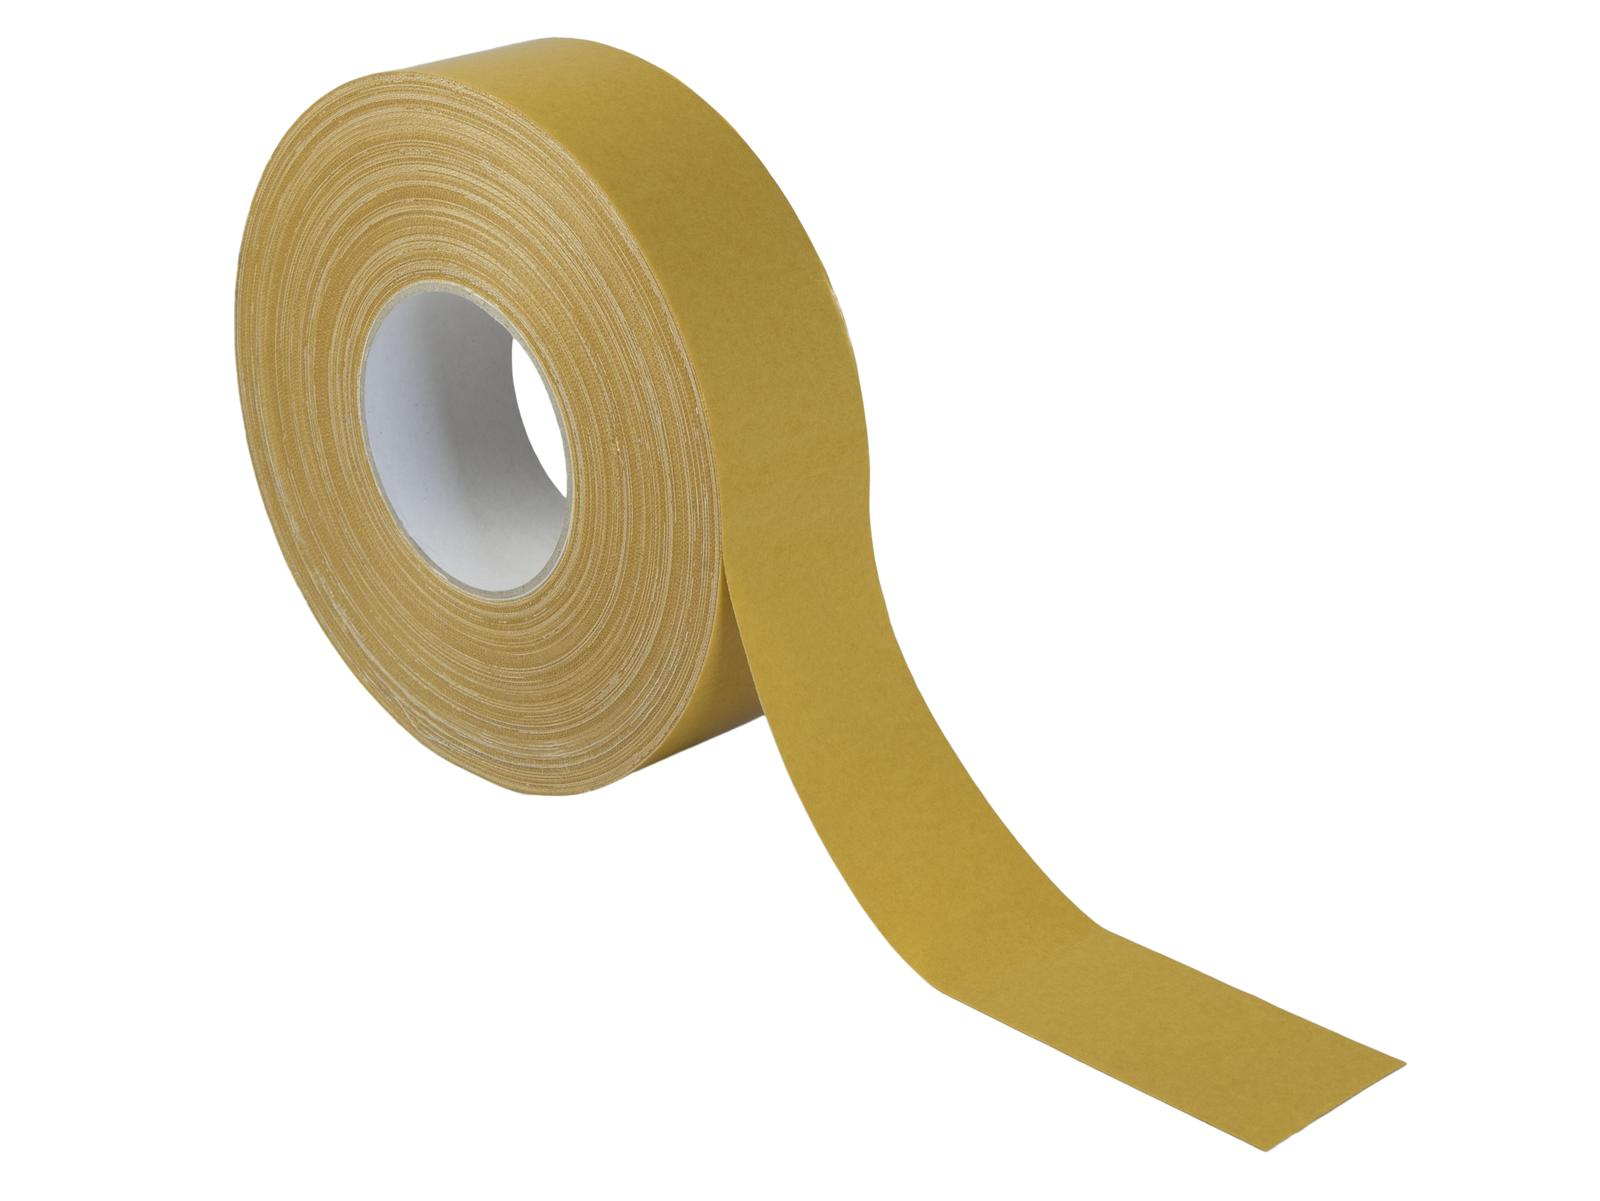 ACCESSORY Adhesive tape for carpet/carpet 50mmx50m